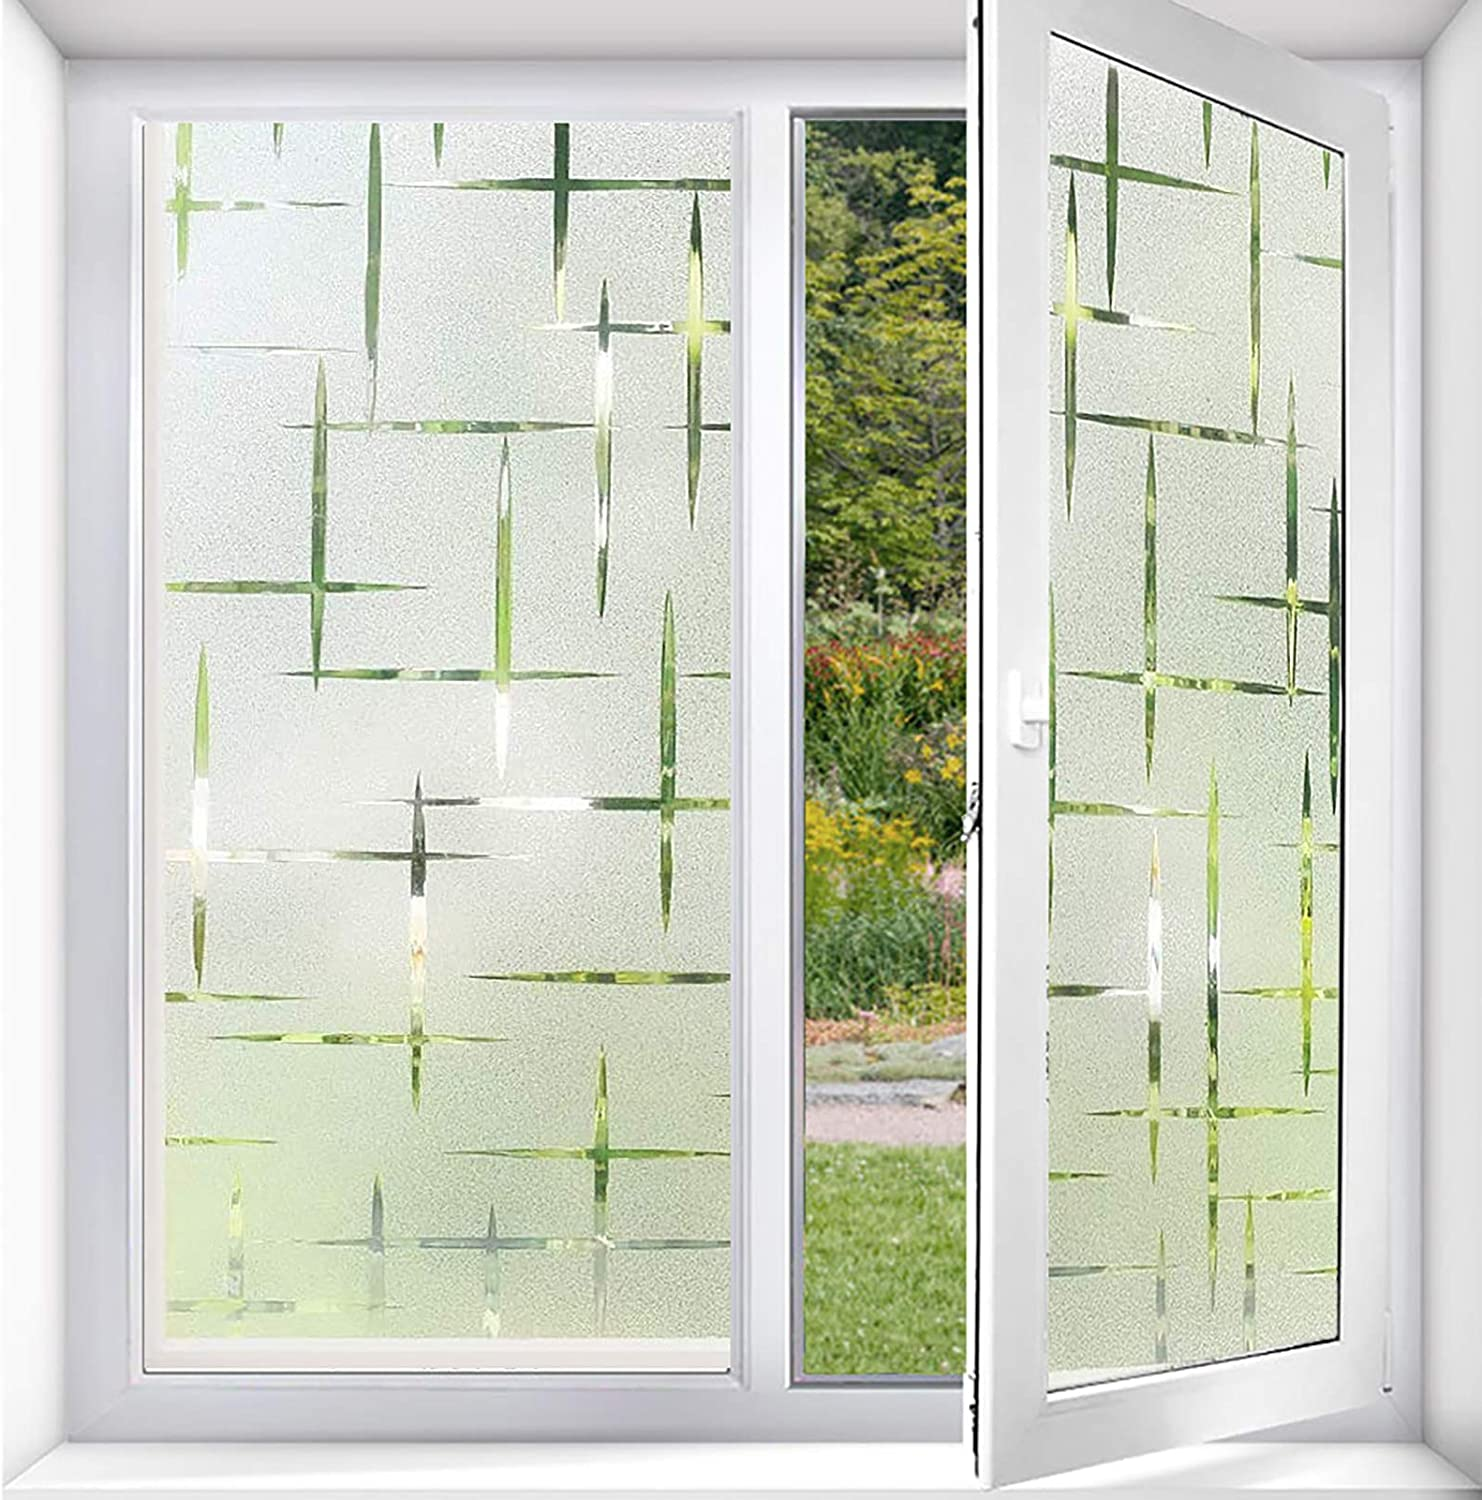 ACMETOP Window Film Privacy No Glue, Privacy Window Film for Windows & Doors, Self Static Decorative Window Film for Home Office Kitchen Living Room UV Protection (3D Cross Pattern, 17.5 x 78.7 in)